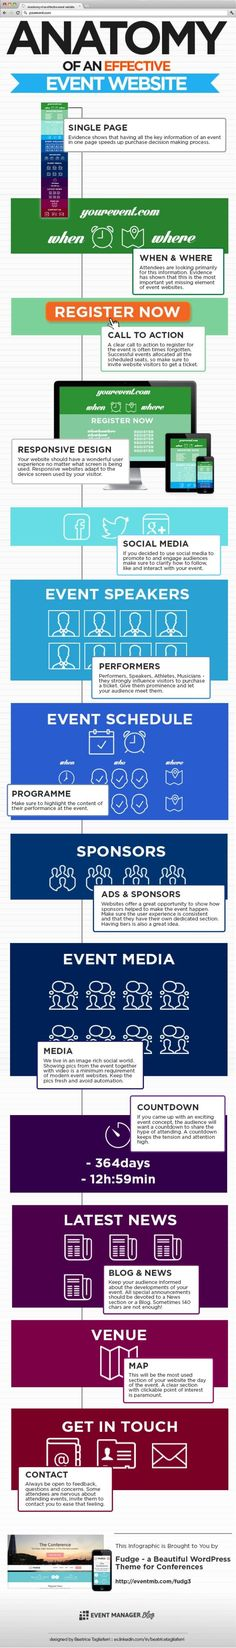 fundraising infographic : Anatomy of an Effective Event Webiste by Julius Solaris via slideshare from 10 I